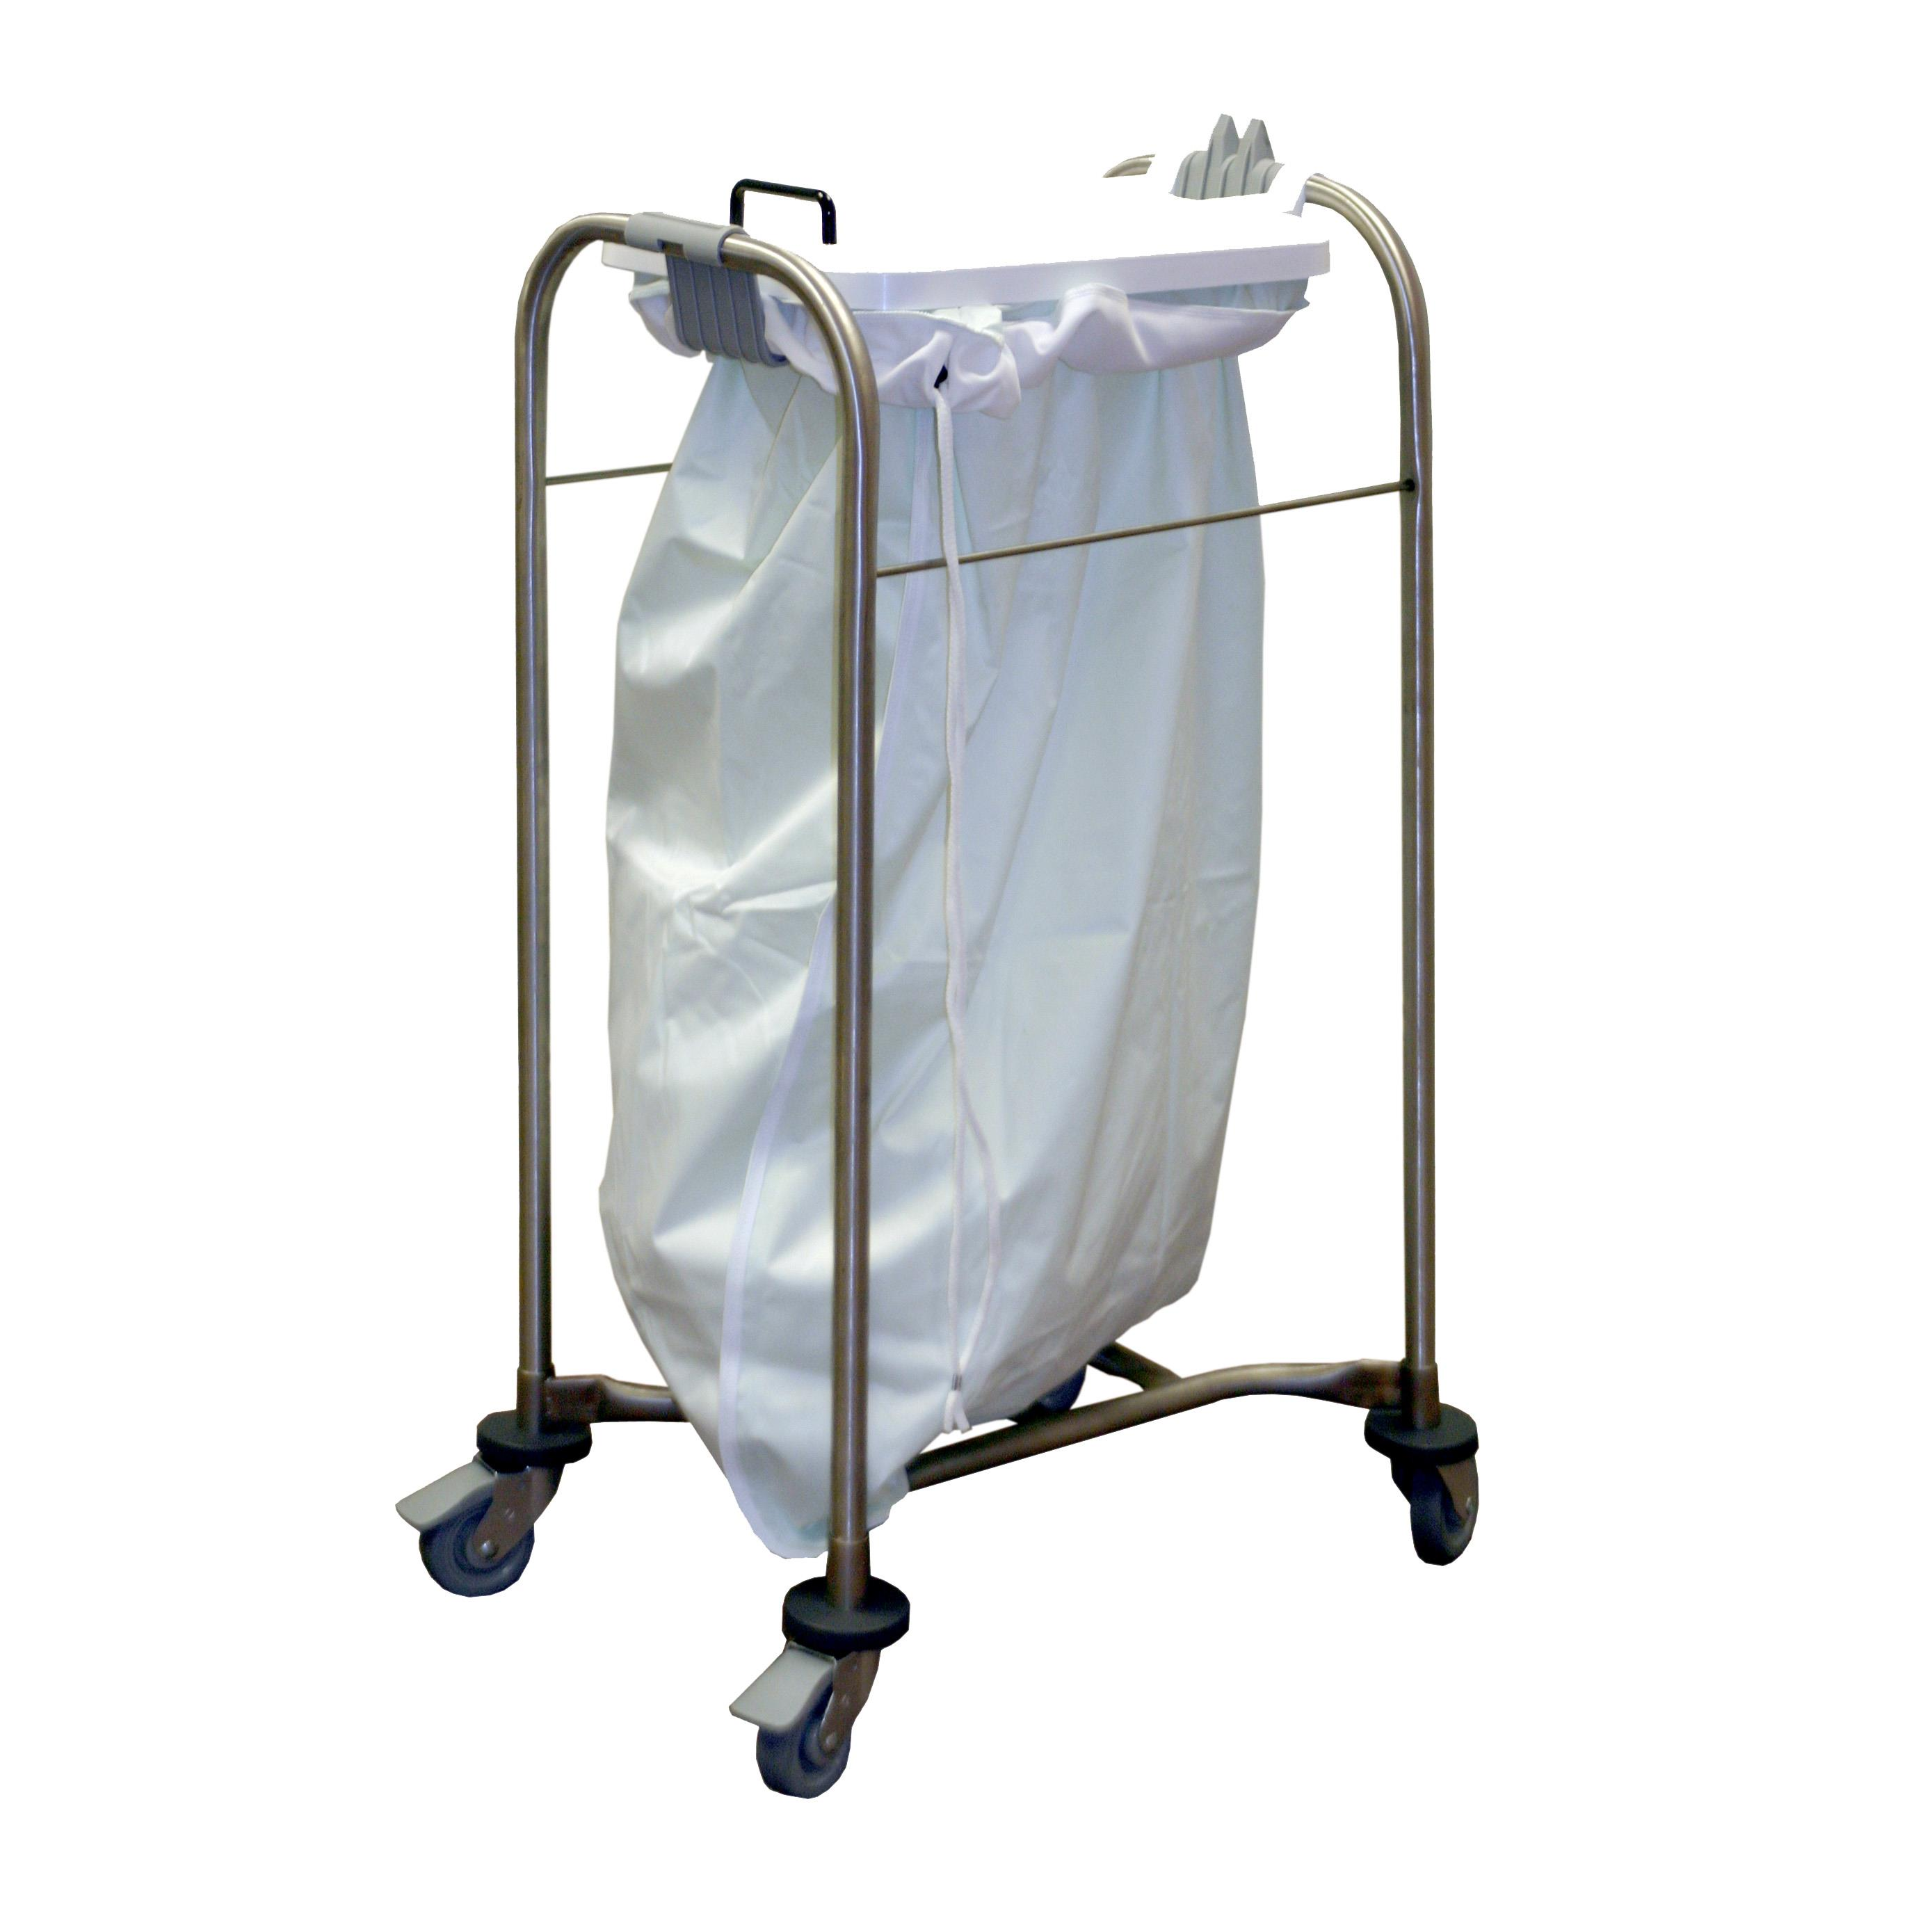 LAUNDRY CART - 1 BAG